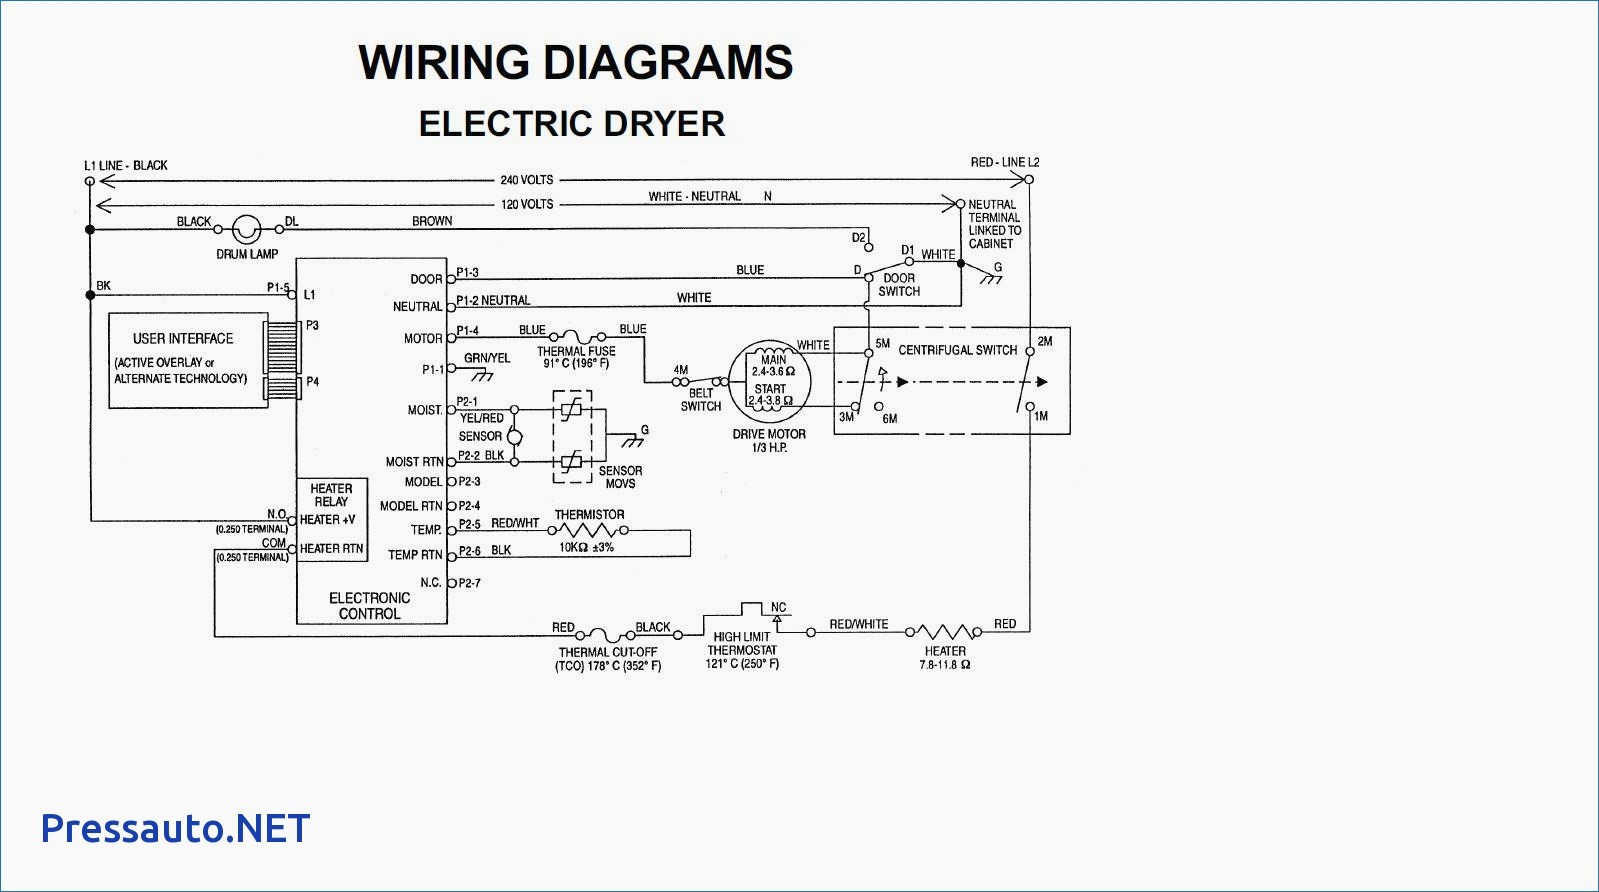 Wiring Diagram for Whirlpool Dryer Heating Element Wiring Diagram